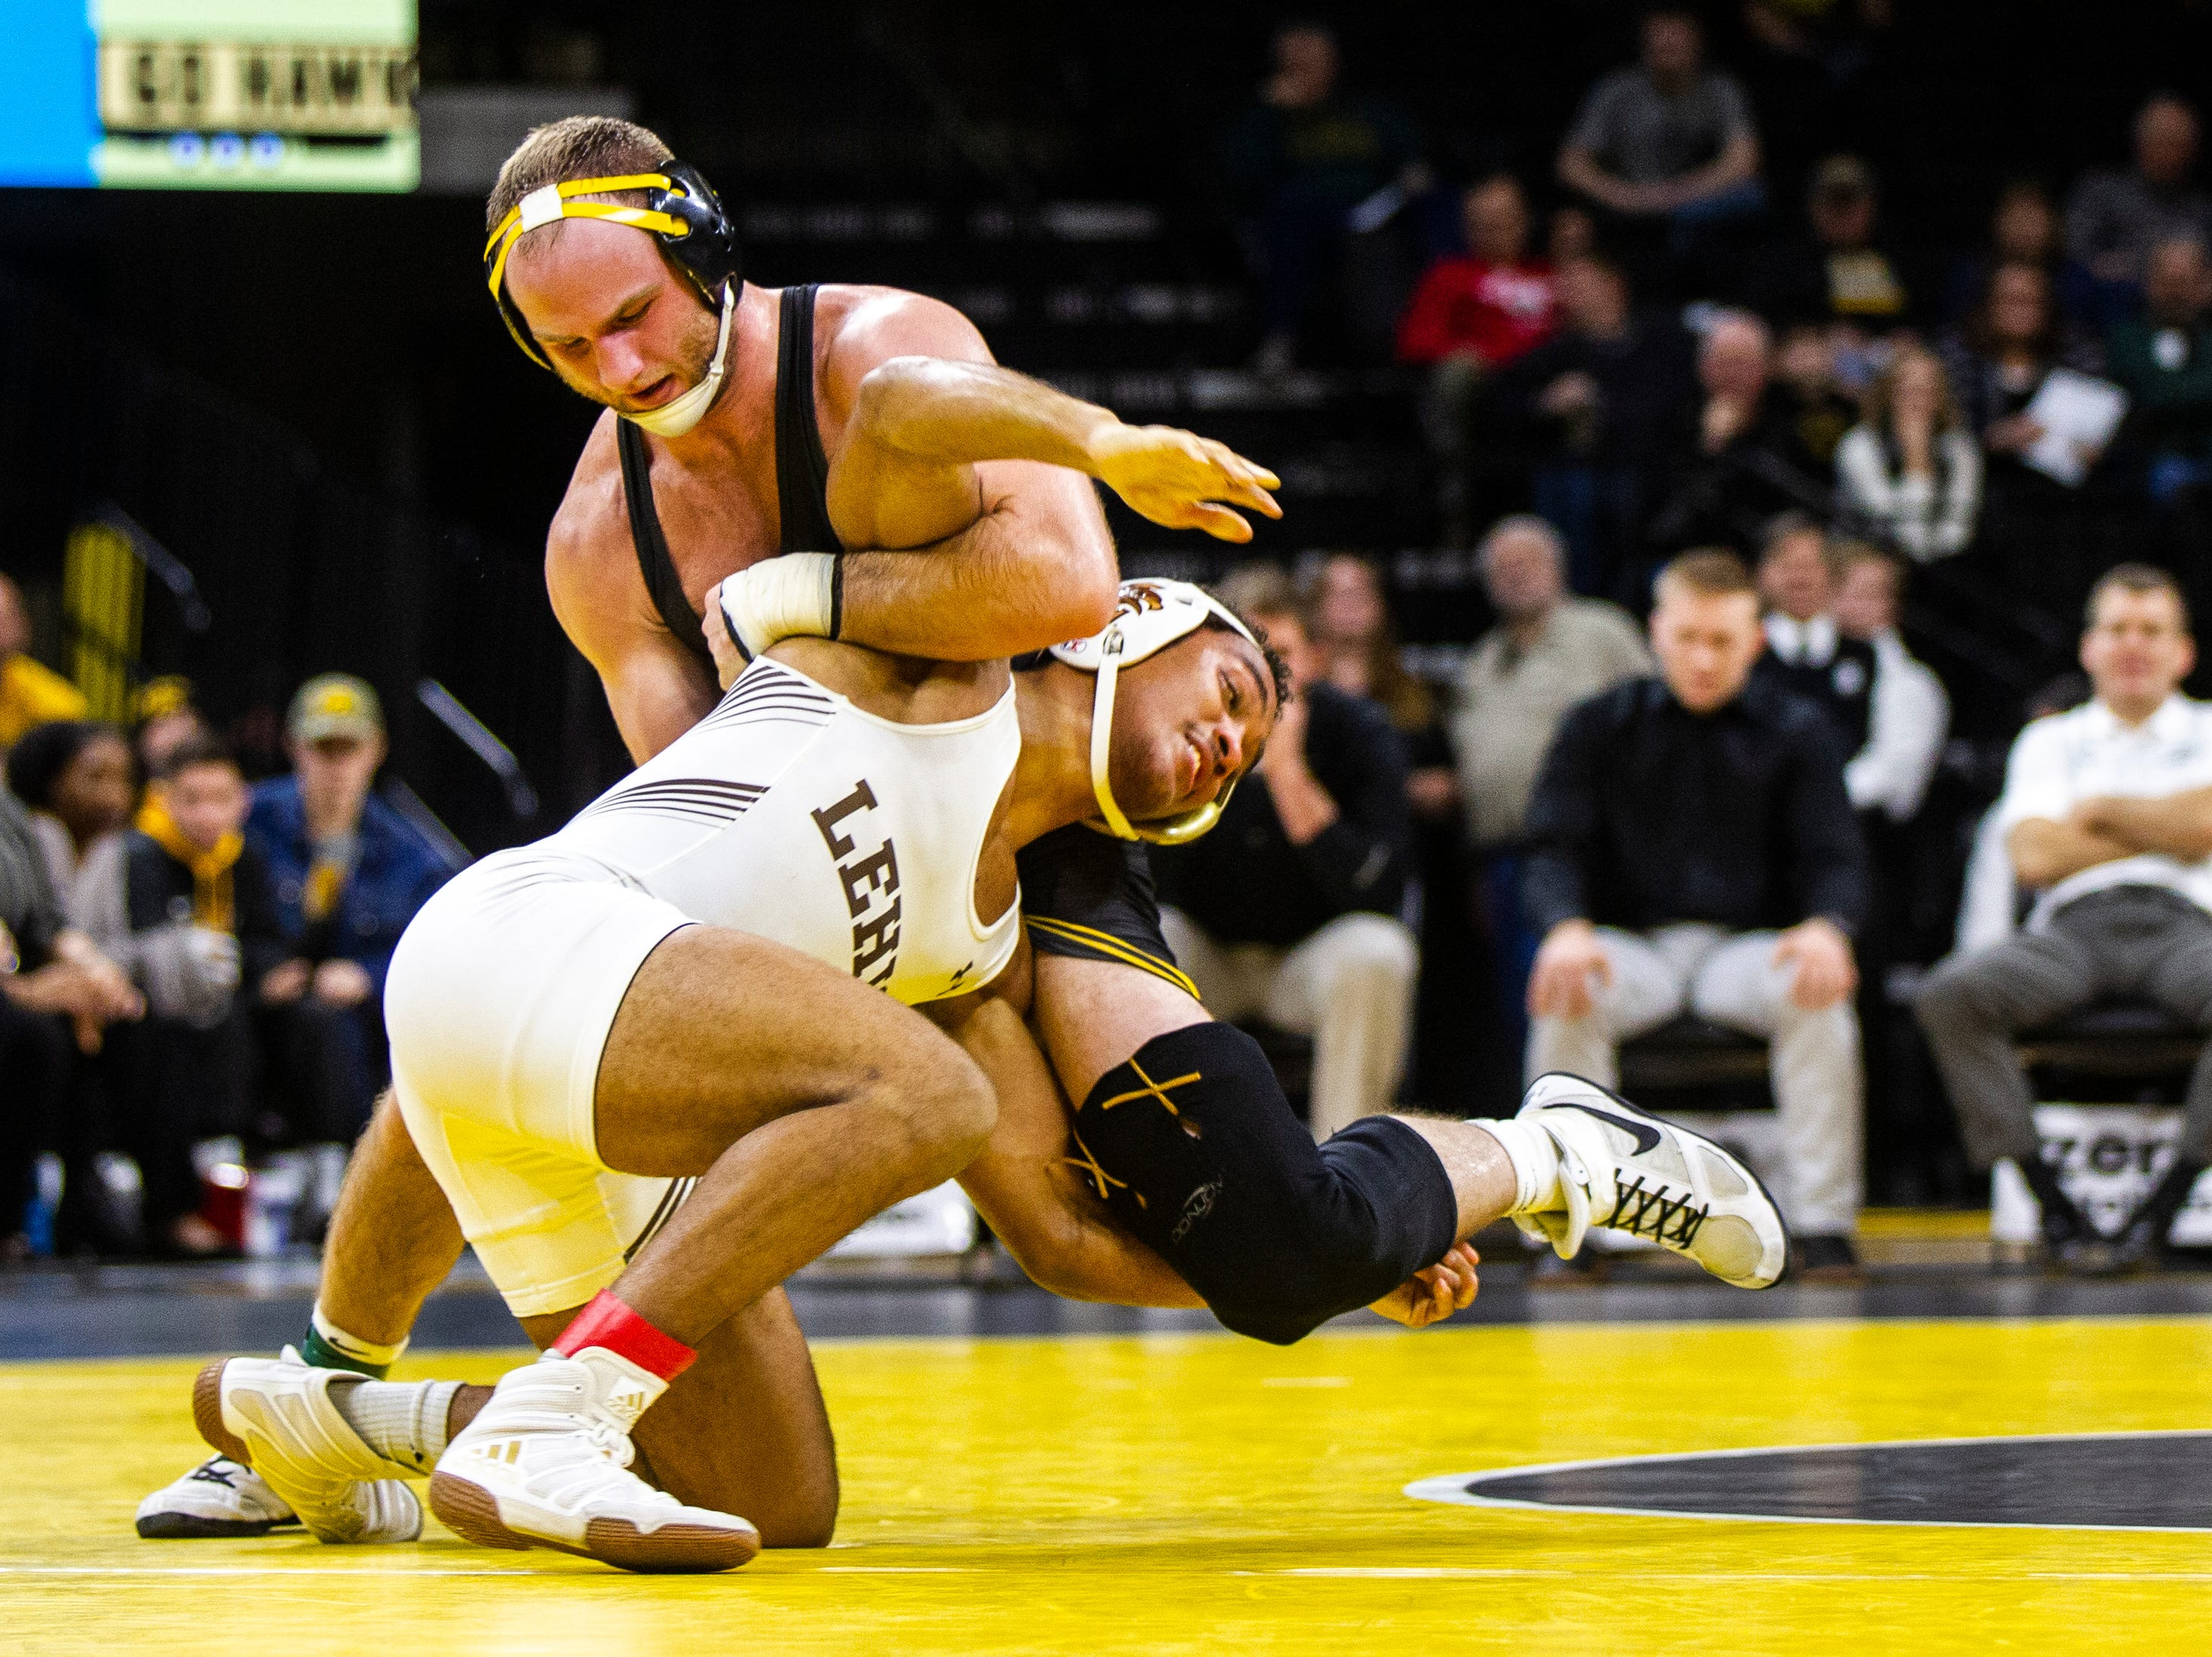 Iowa's Alex Marinelli, left, wrestles Lehigh's Trey Cornish at 165 during a NCAA wrestling dual on Saturday, Dec. 8, 2018, at Carver-Hawkeye Arena in Iowa City.